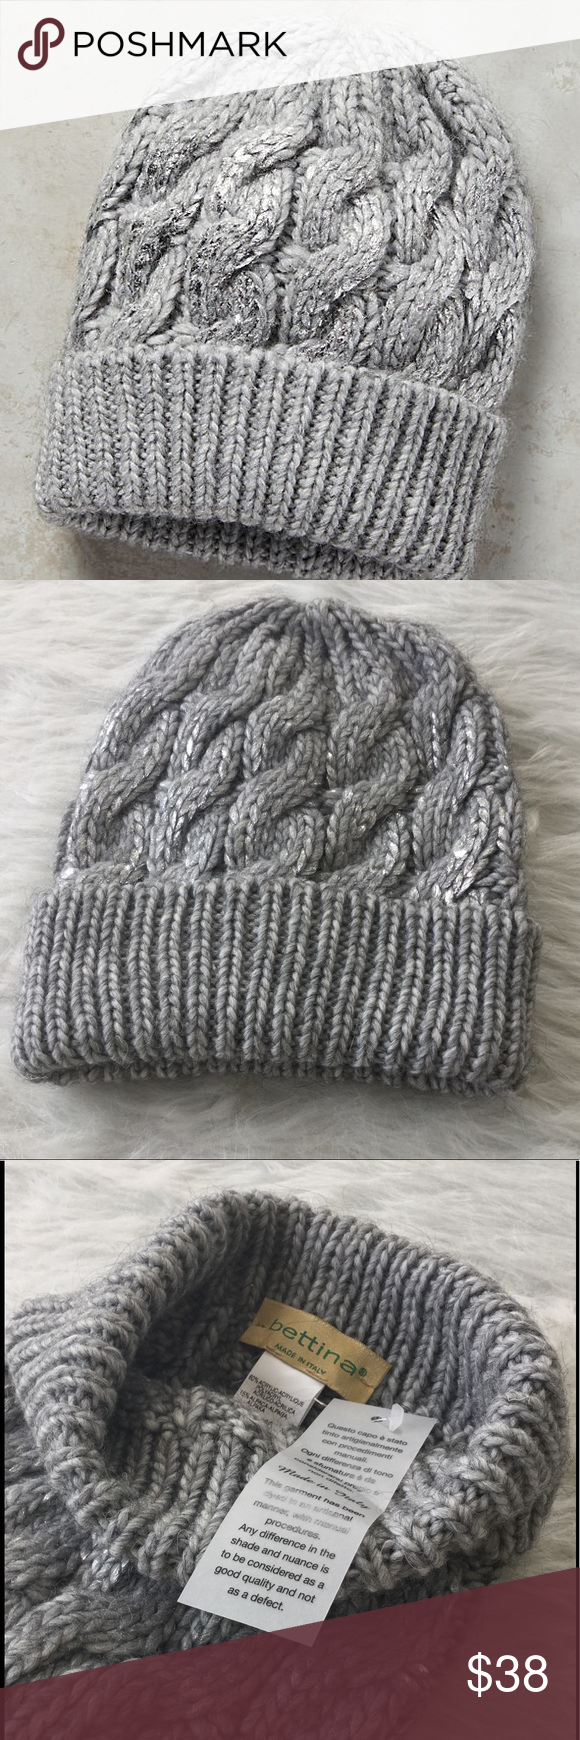 69ccb896c02 NWT Anthropologie Glinted Cables Beanie Thick